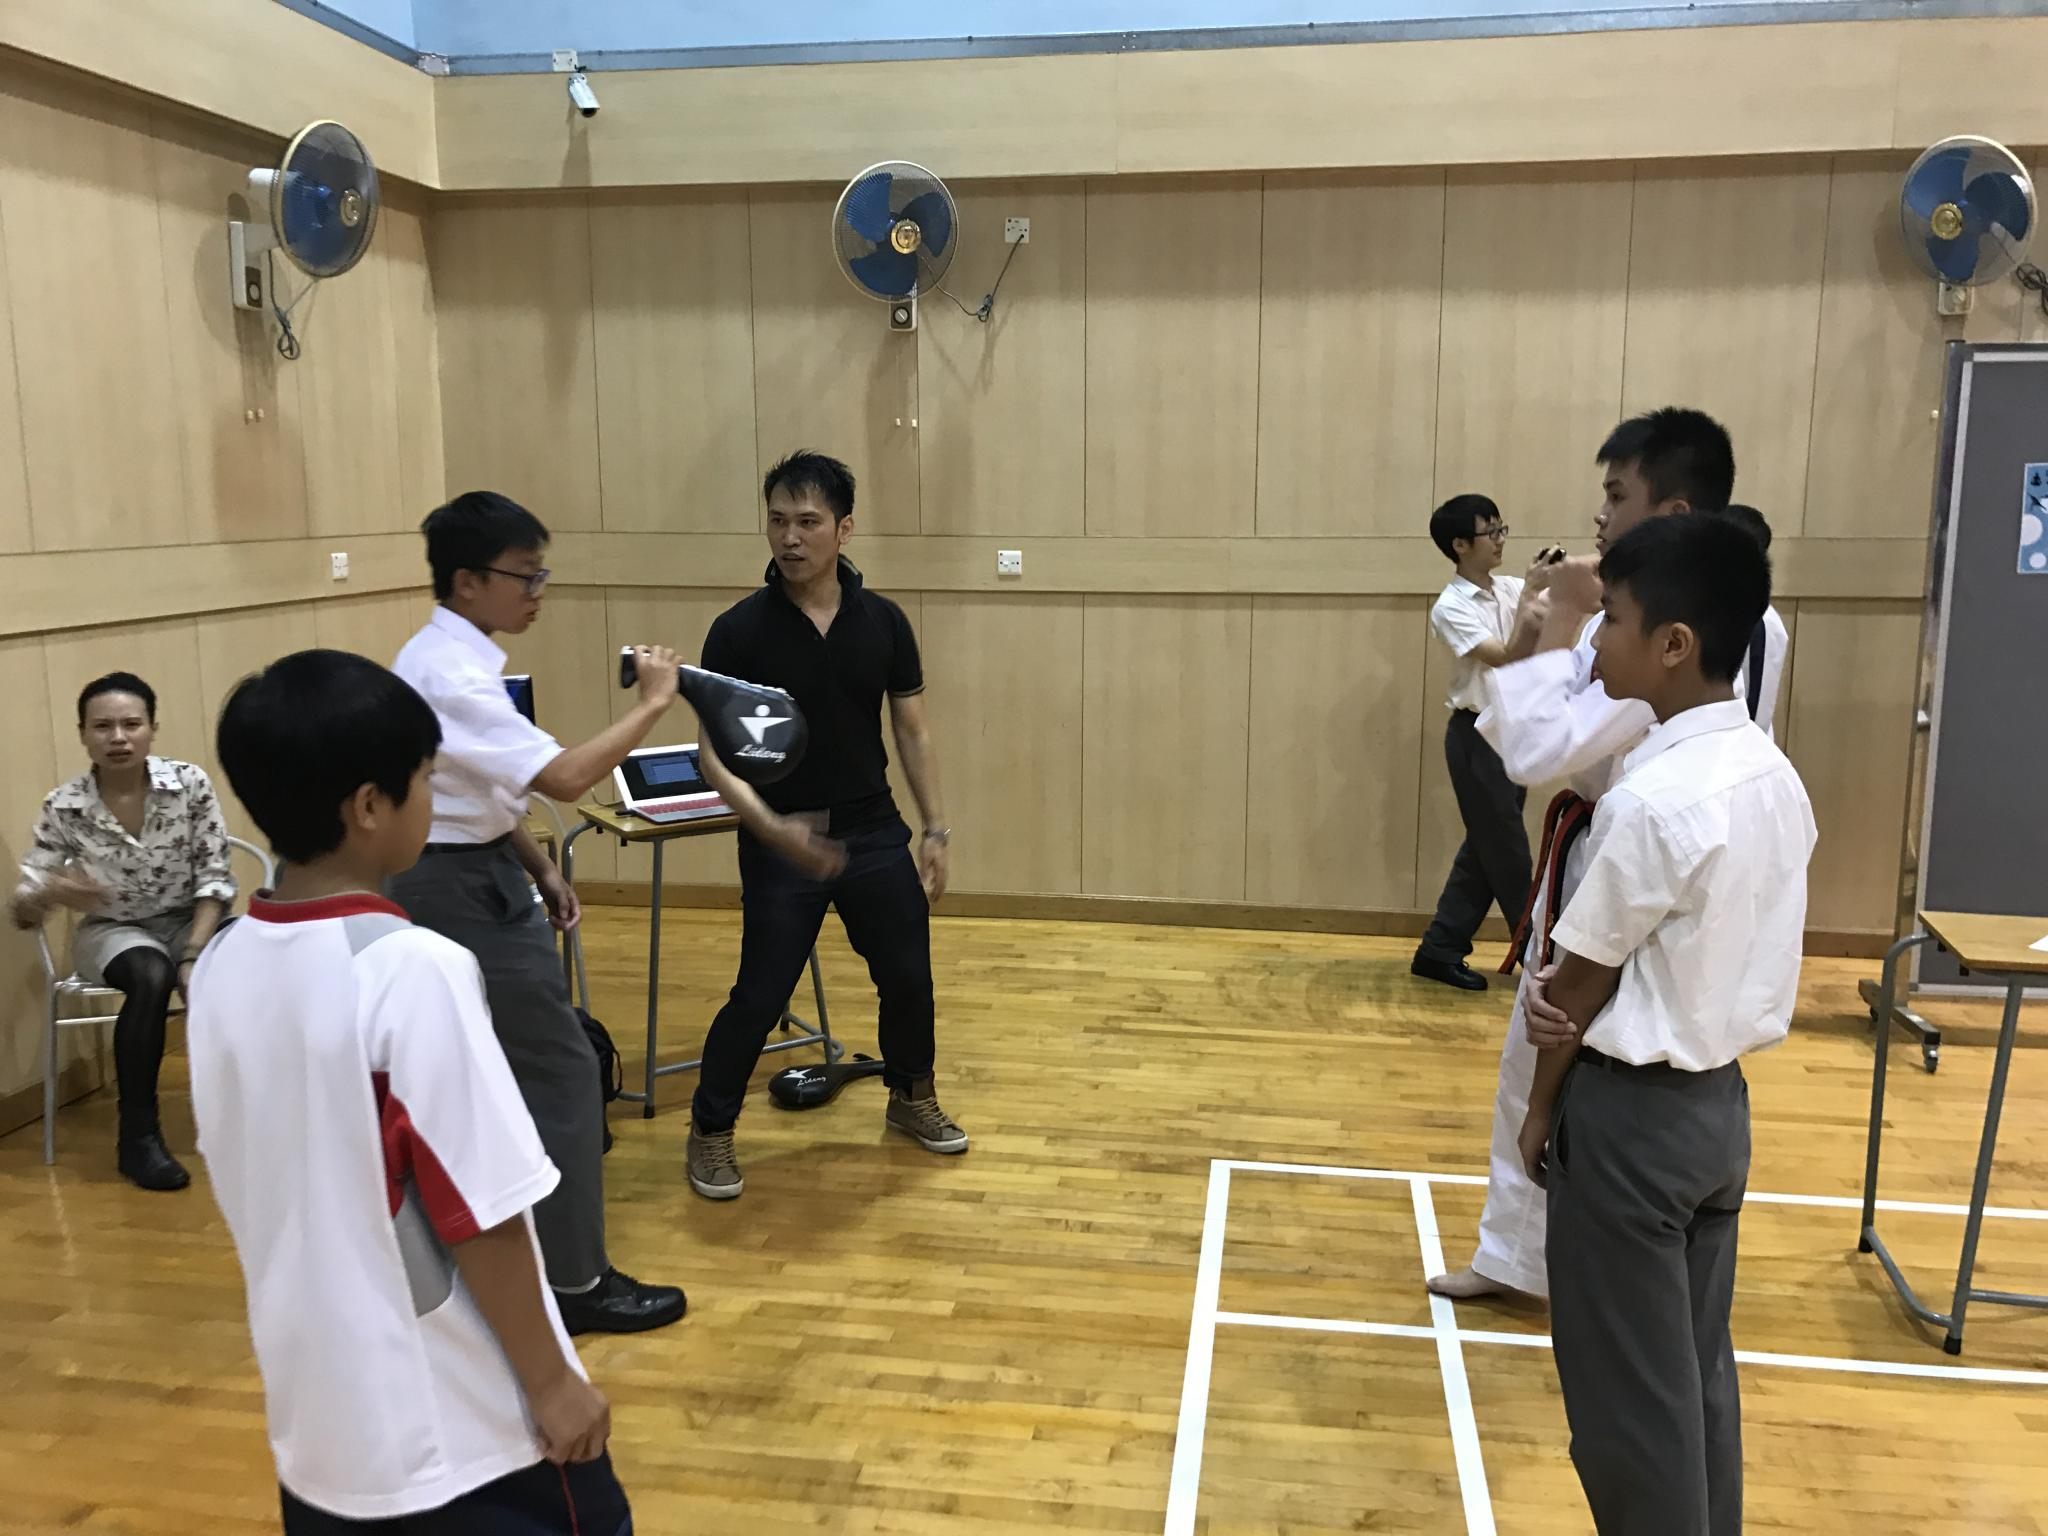 Students showed their interest in the Taekwondo Class.